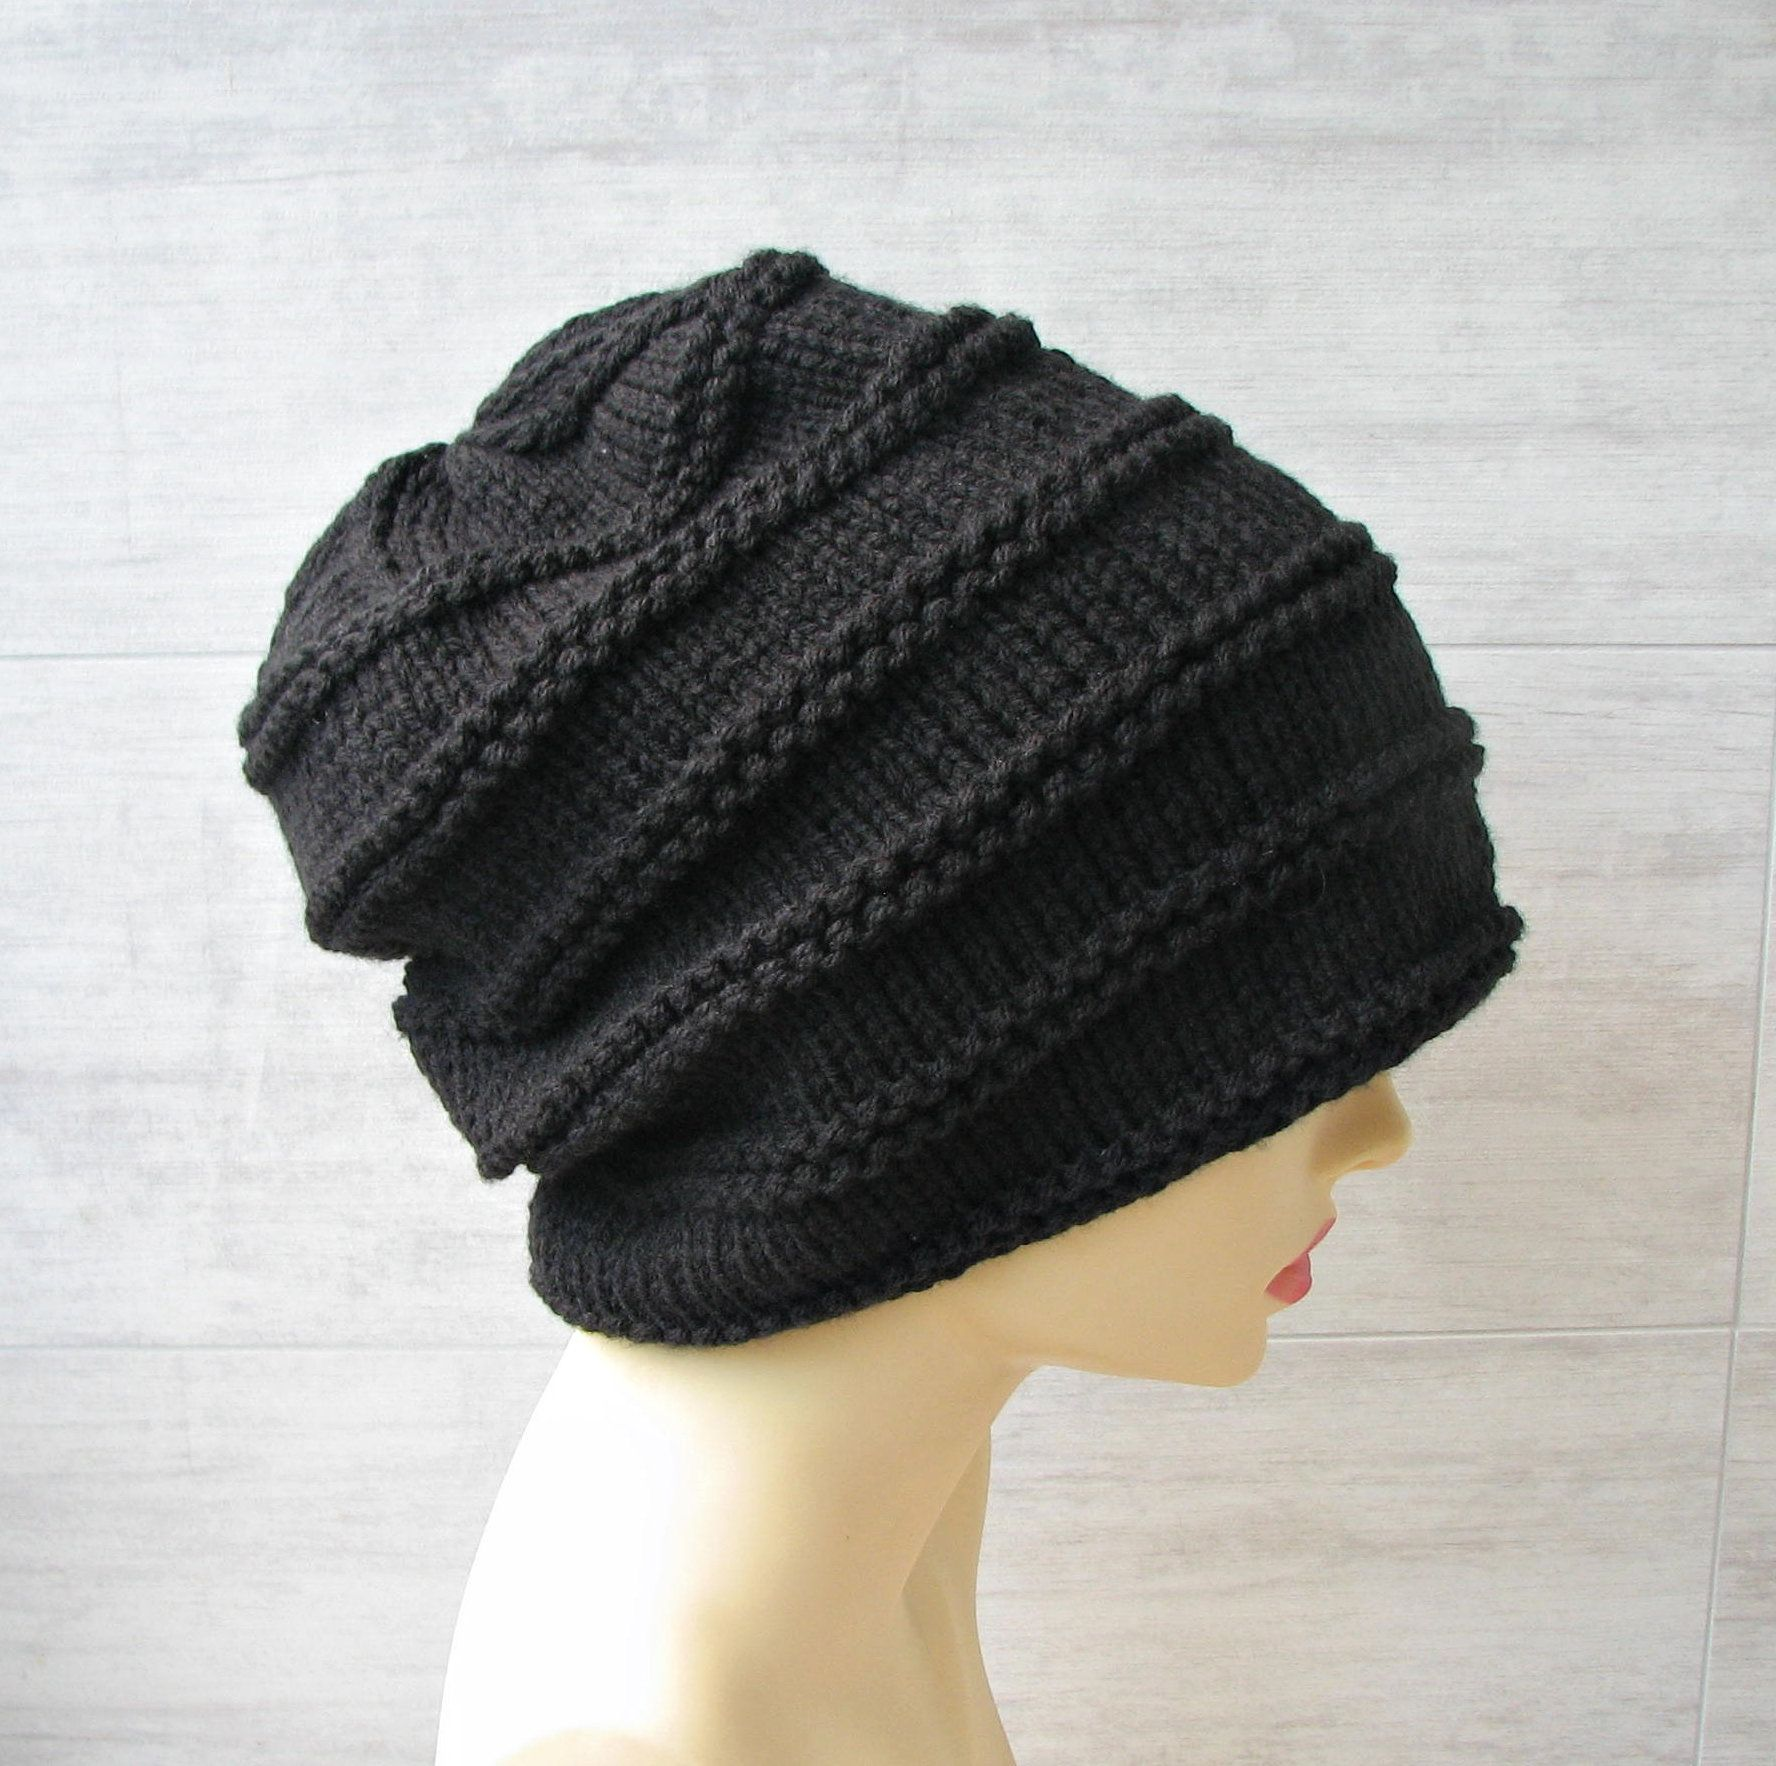 1214726b1 Hats for guys with dreads, long slouchy beanie, stocking cap for ...